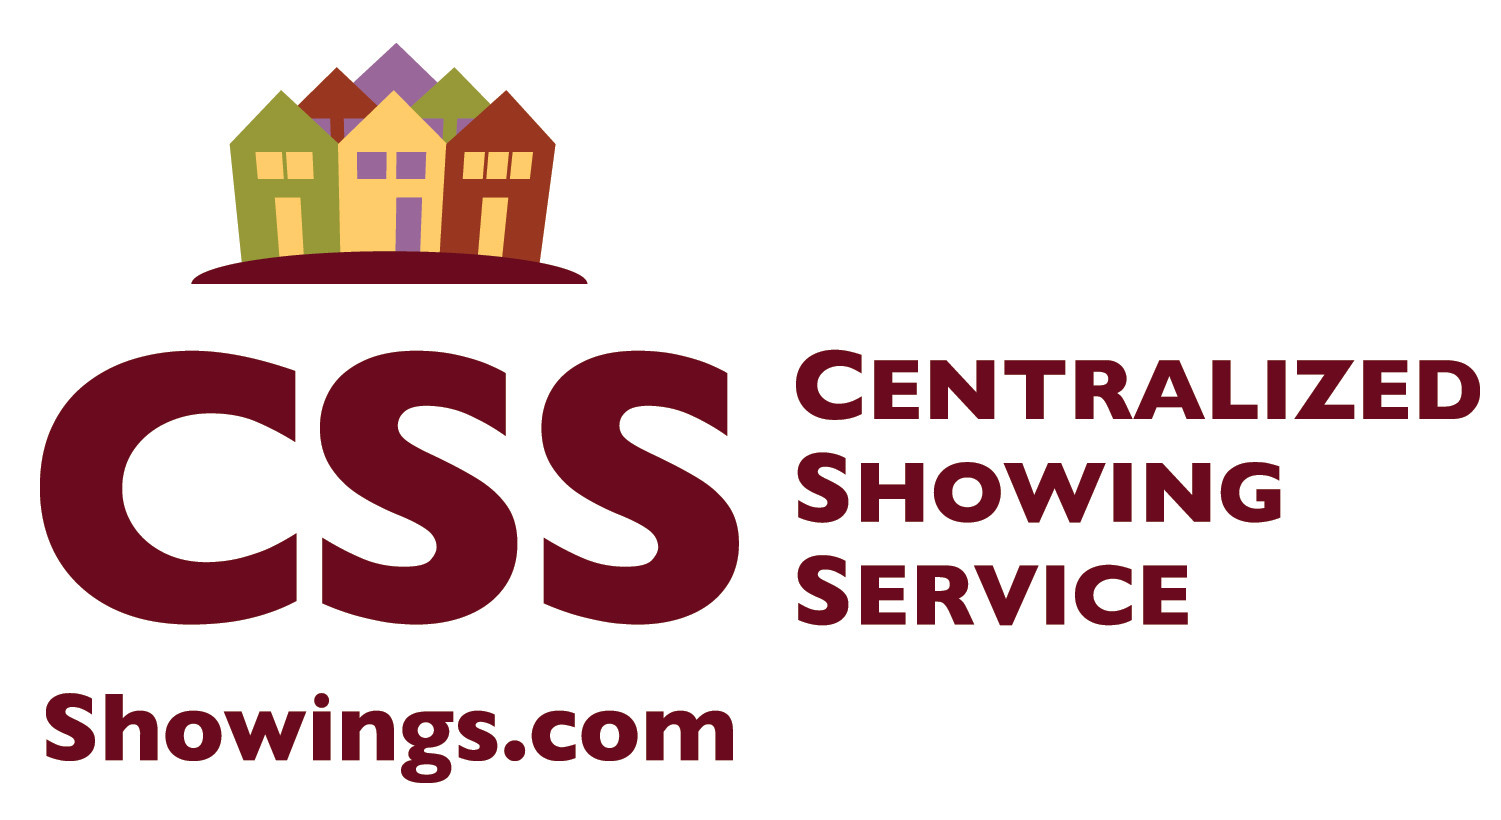 Centralized Showing Service